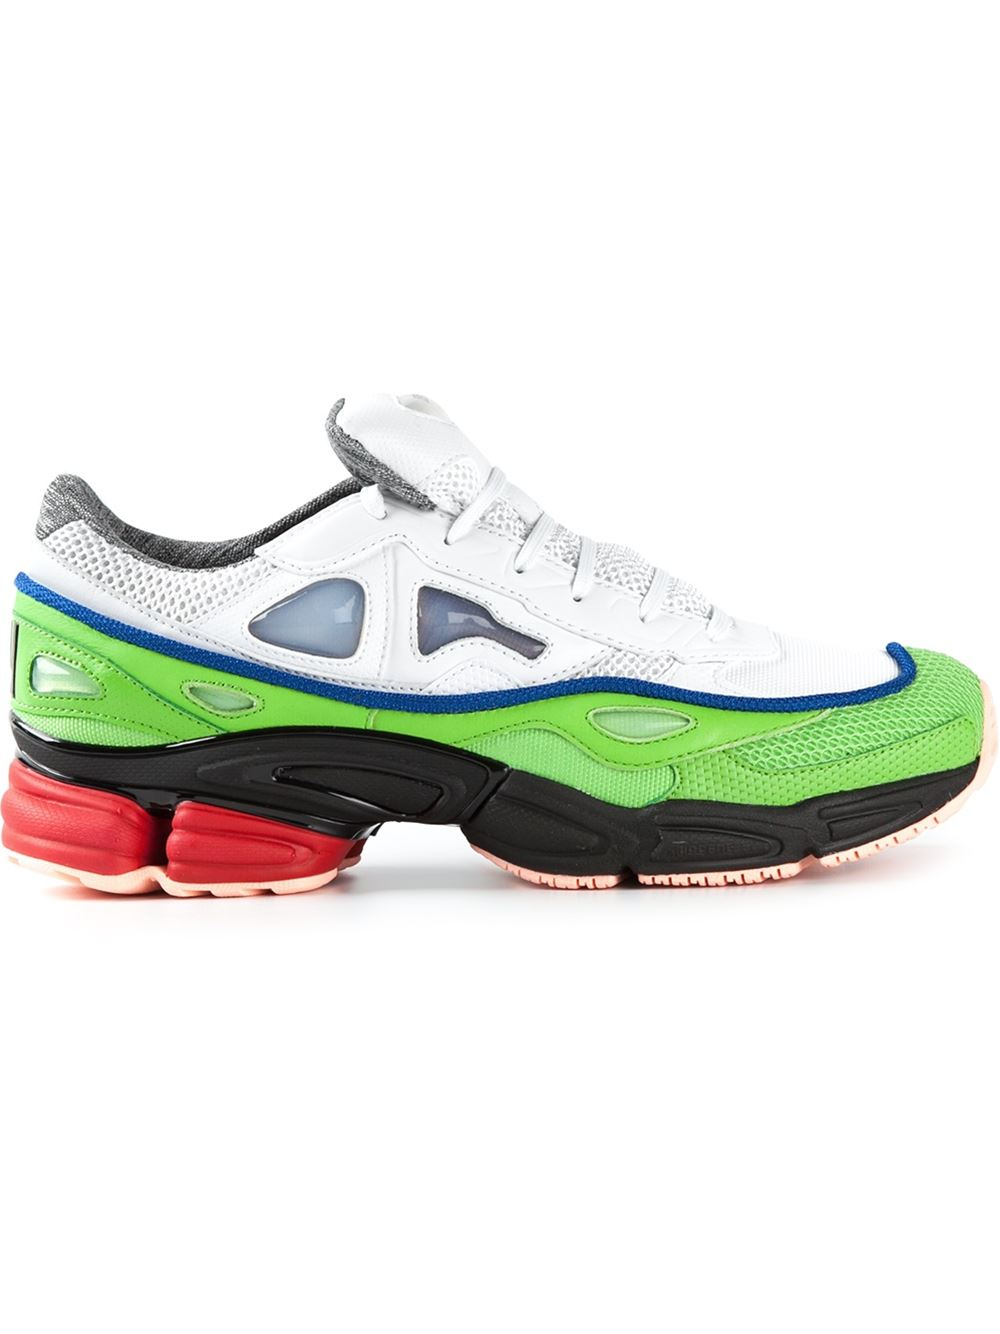 product kitchen pantry ideas html with Raf Simons Sneakers on Hammonds Console Table Acot1505 in addition Buy White Kitchen Cabi  Doors additionally Material For Kitchen Cabi  Shelves also Opinel Carbon Blade Set Of 4 likewise Raf Simons Sneakers.